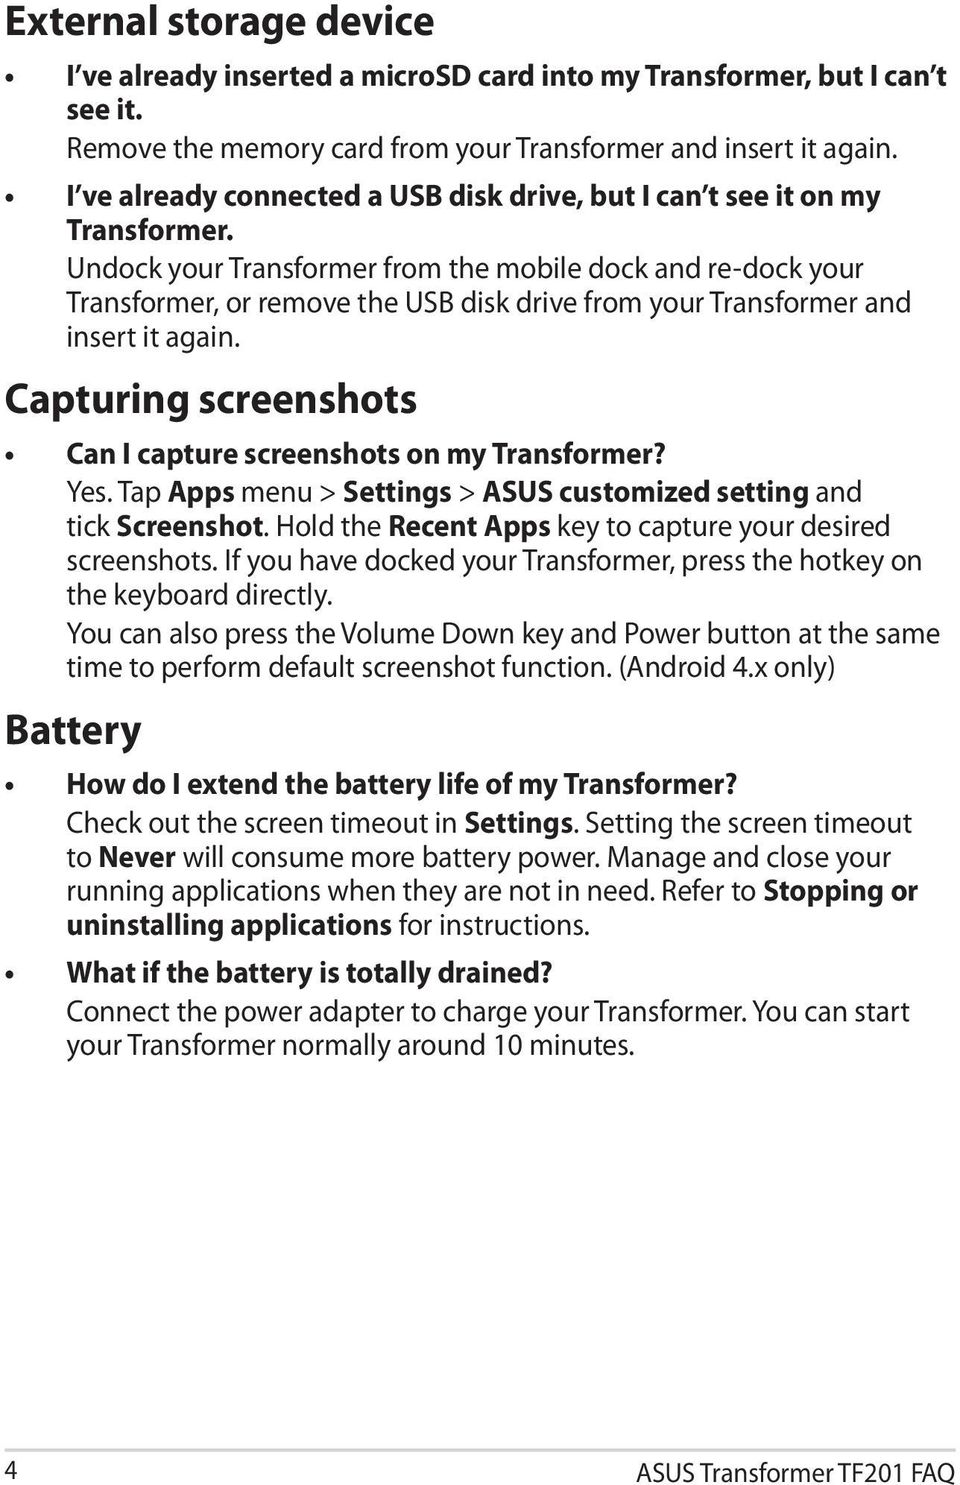 Undock your Transformer from the mobile dock and re-dock your Transformer, or remove the USB disk drive from your Transformer and insert it again.